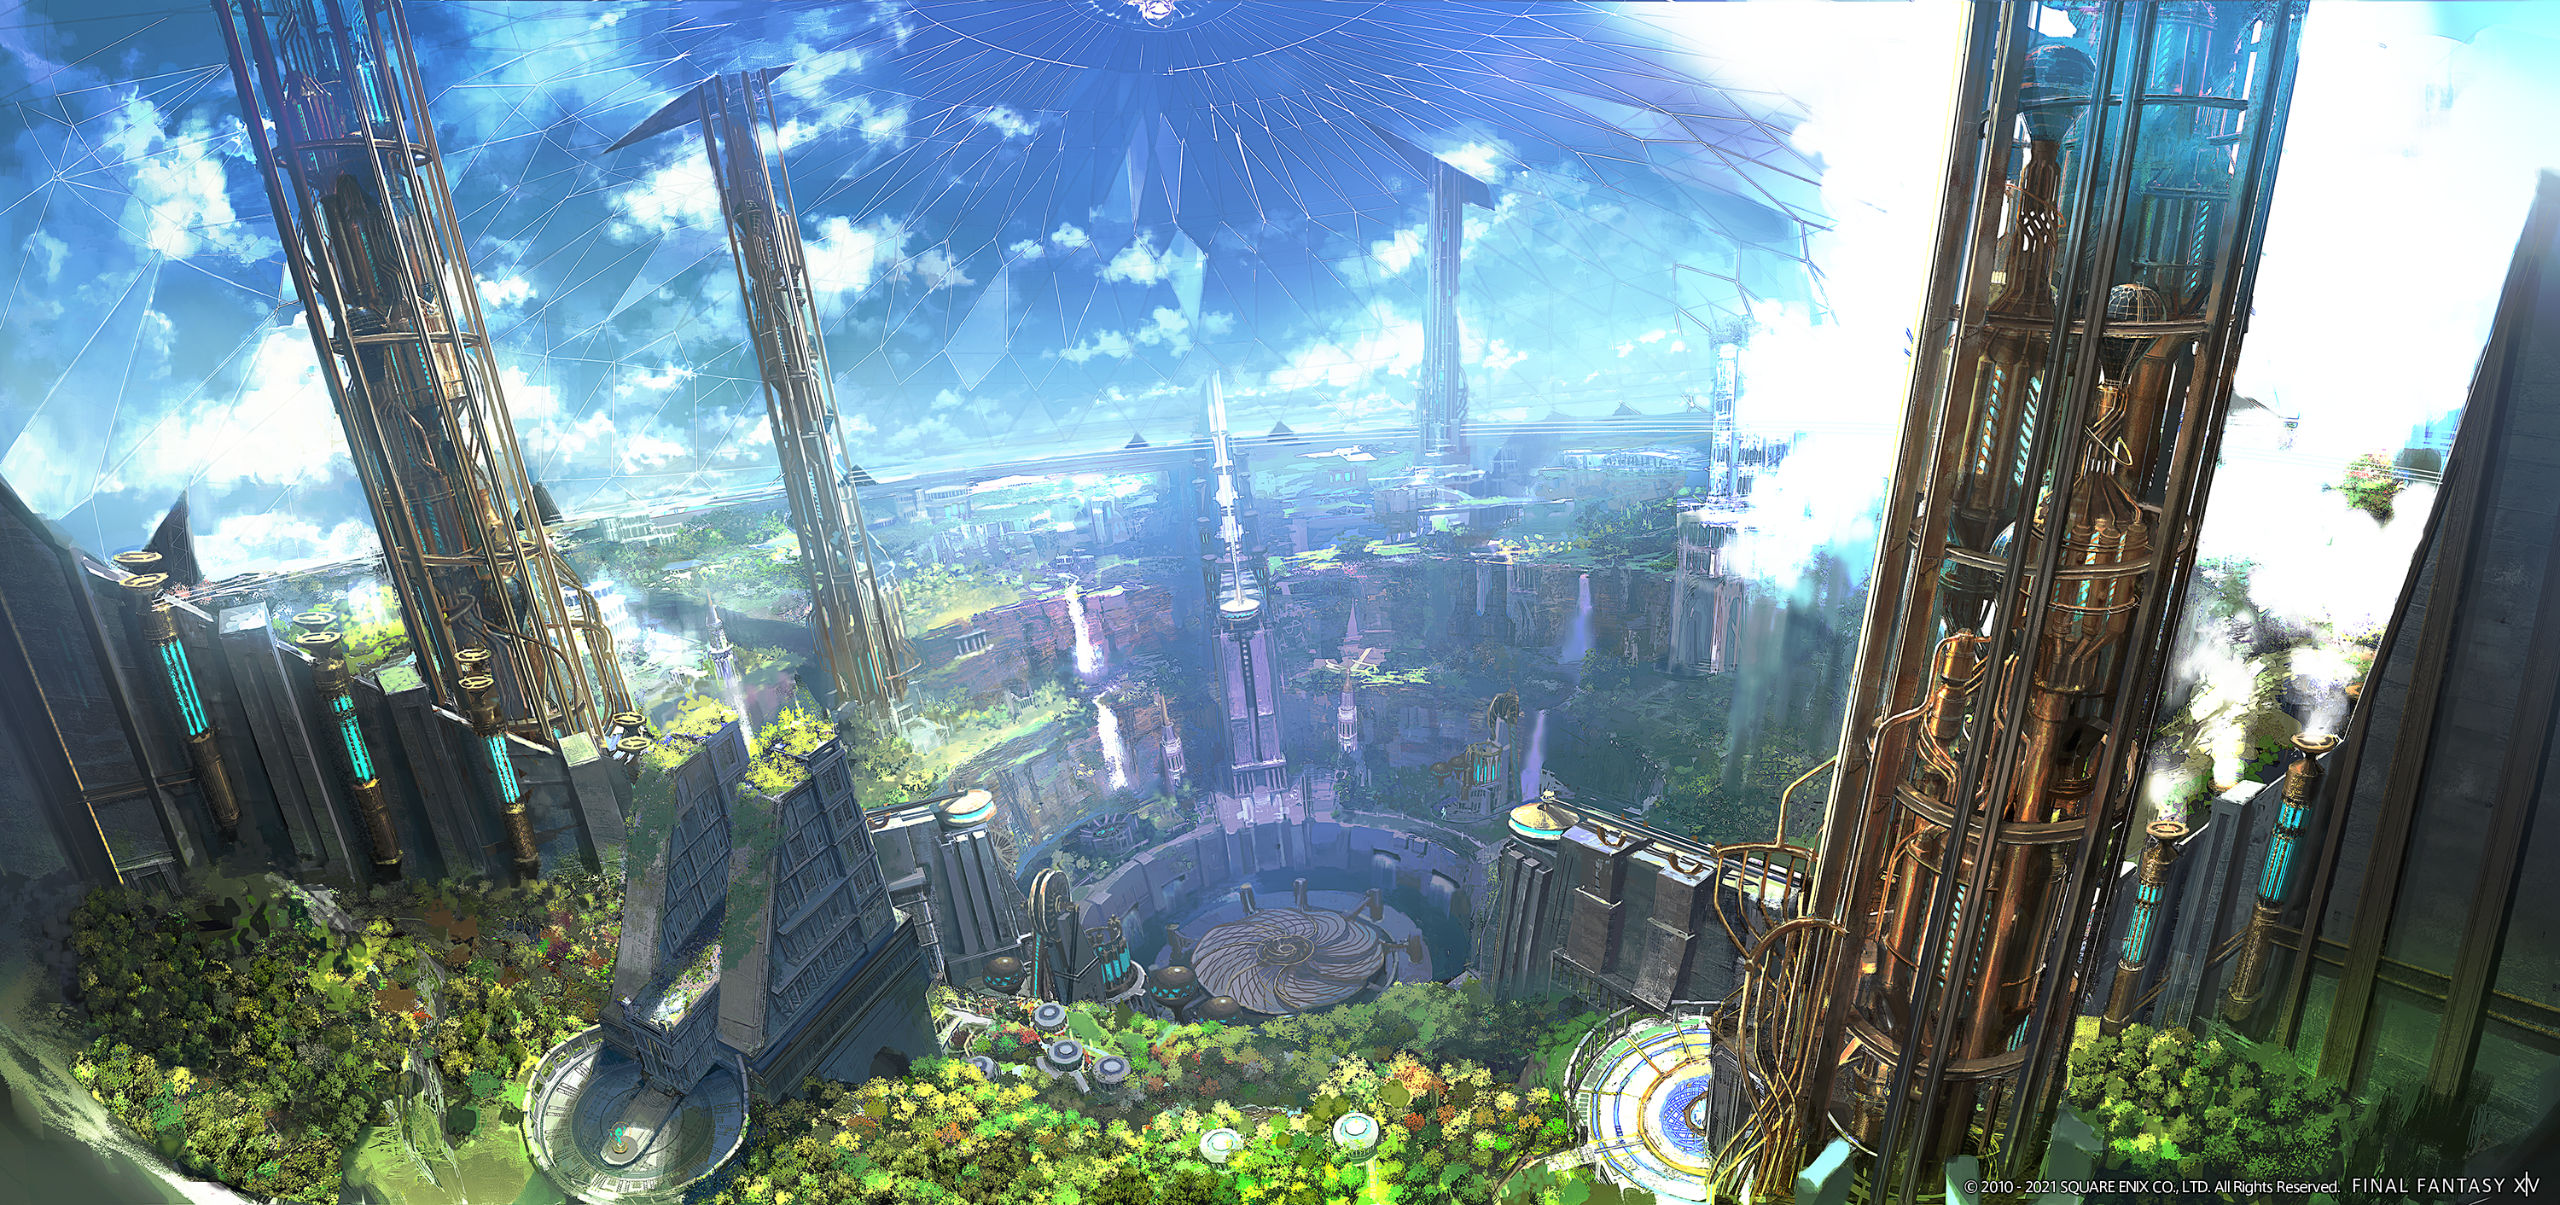 Final Fantasy XIV: Endwalker artwork of an ancient city surrounded by lush greenery and an artificial sky dome.